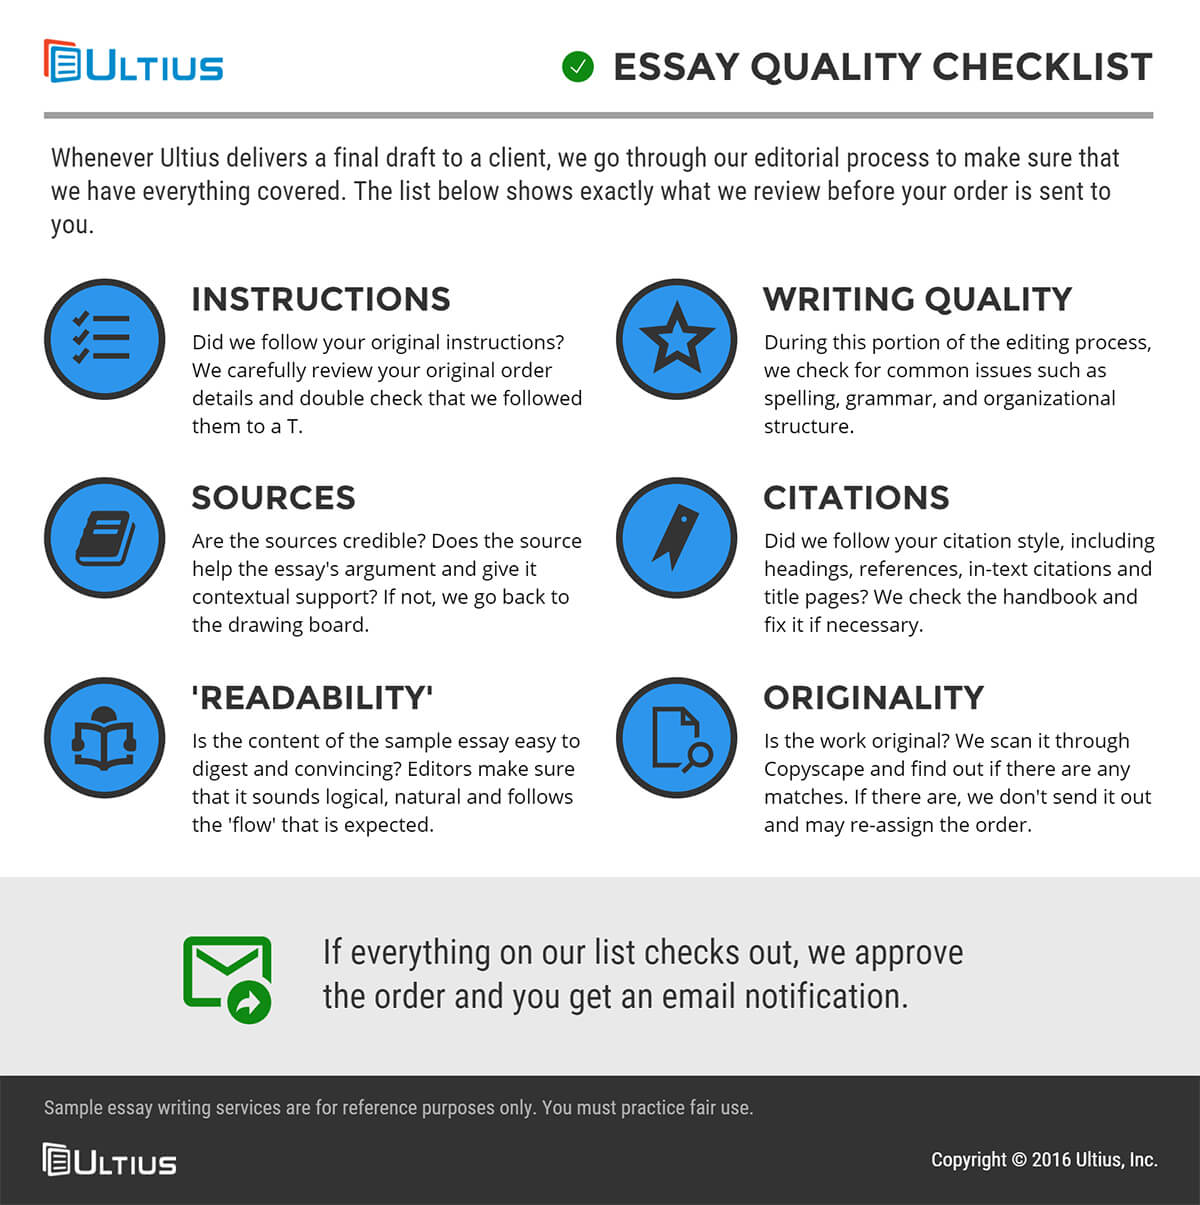 Purchased essay quality checklist